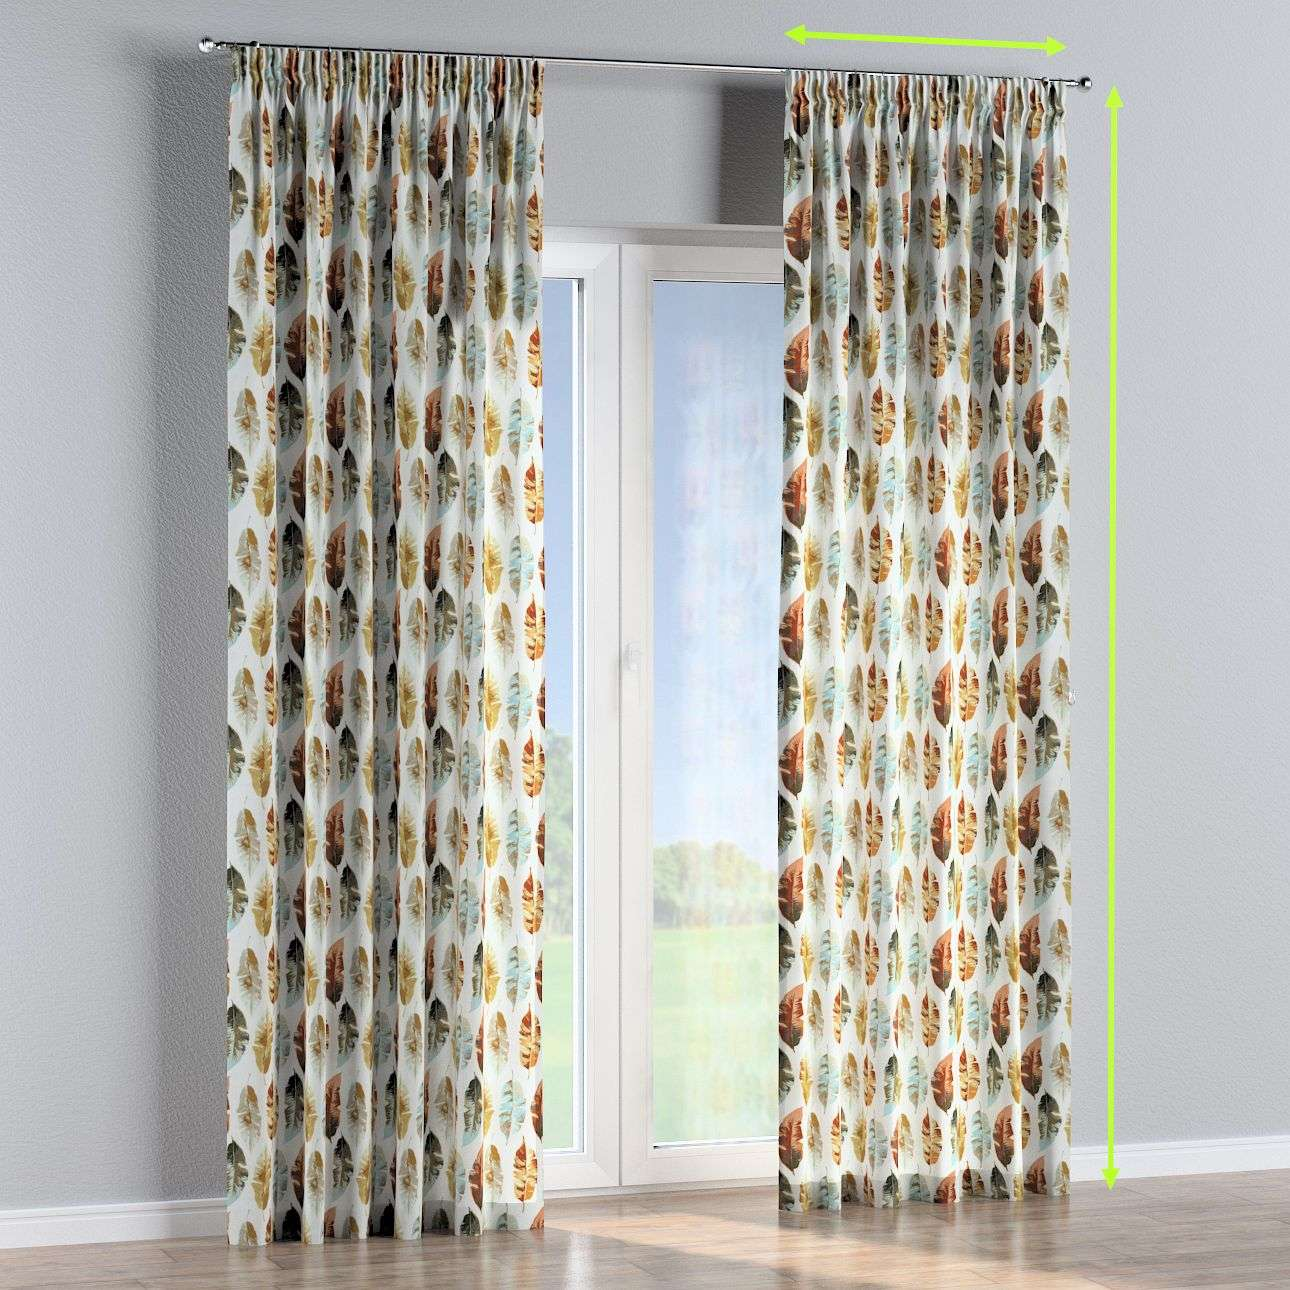 Pencil pleat lined curtains in collection Urban Jungle, fabric: 141-43